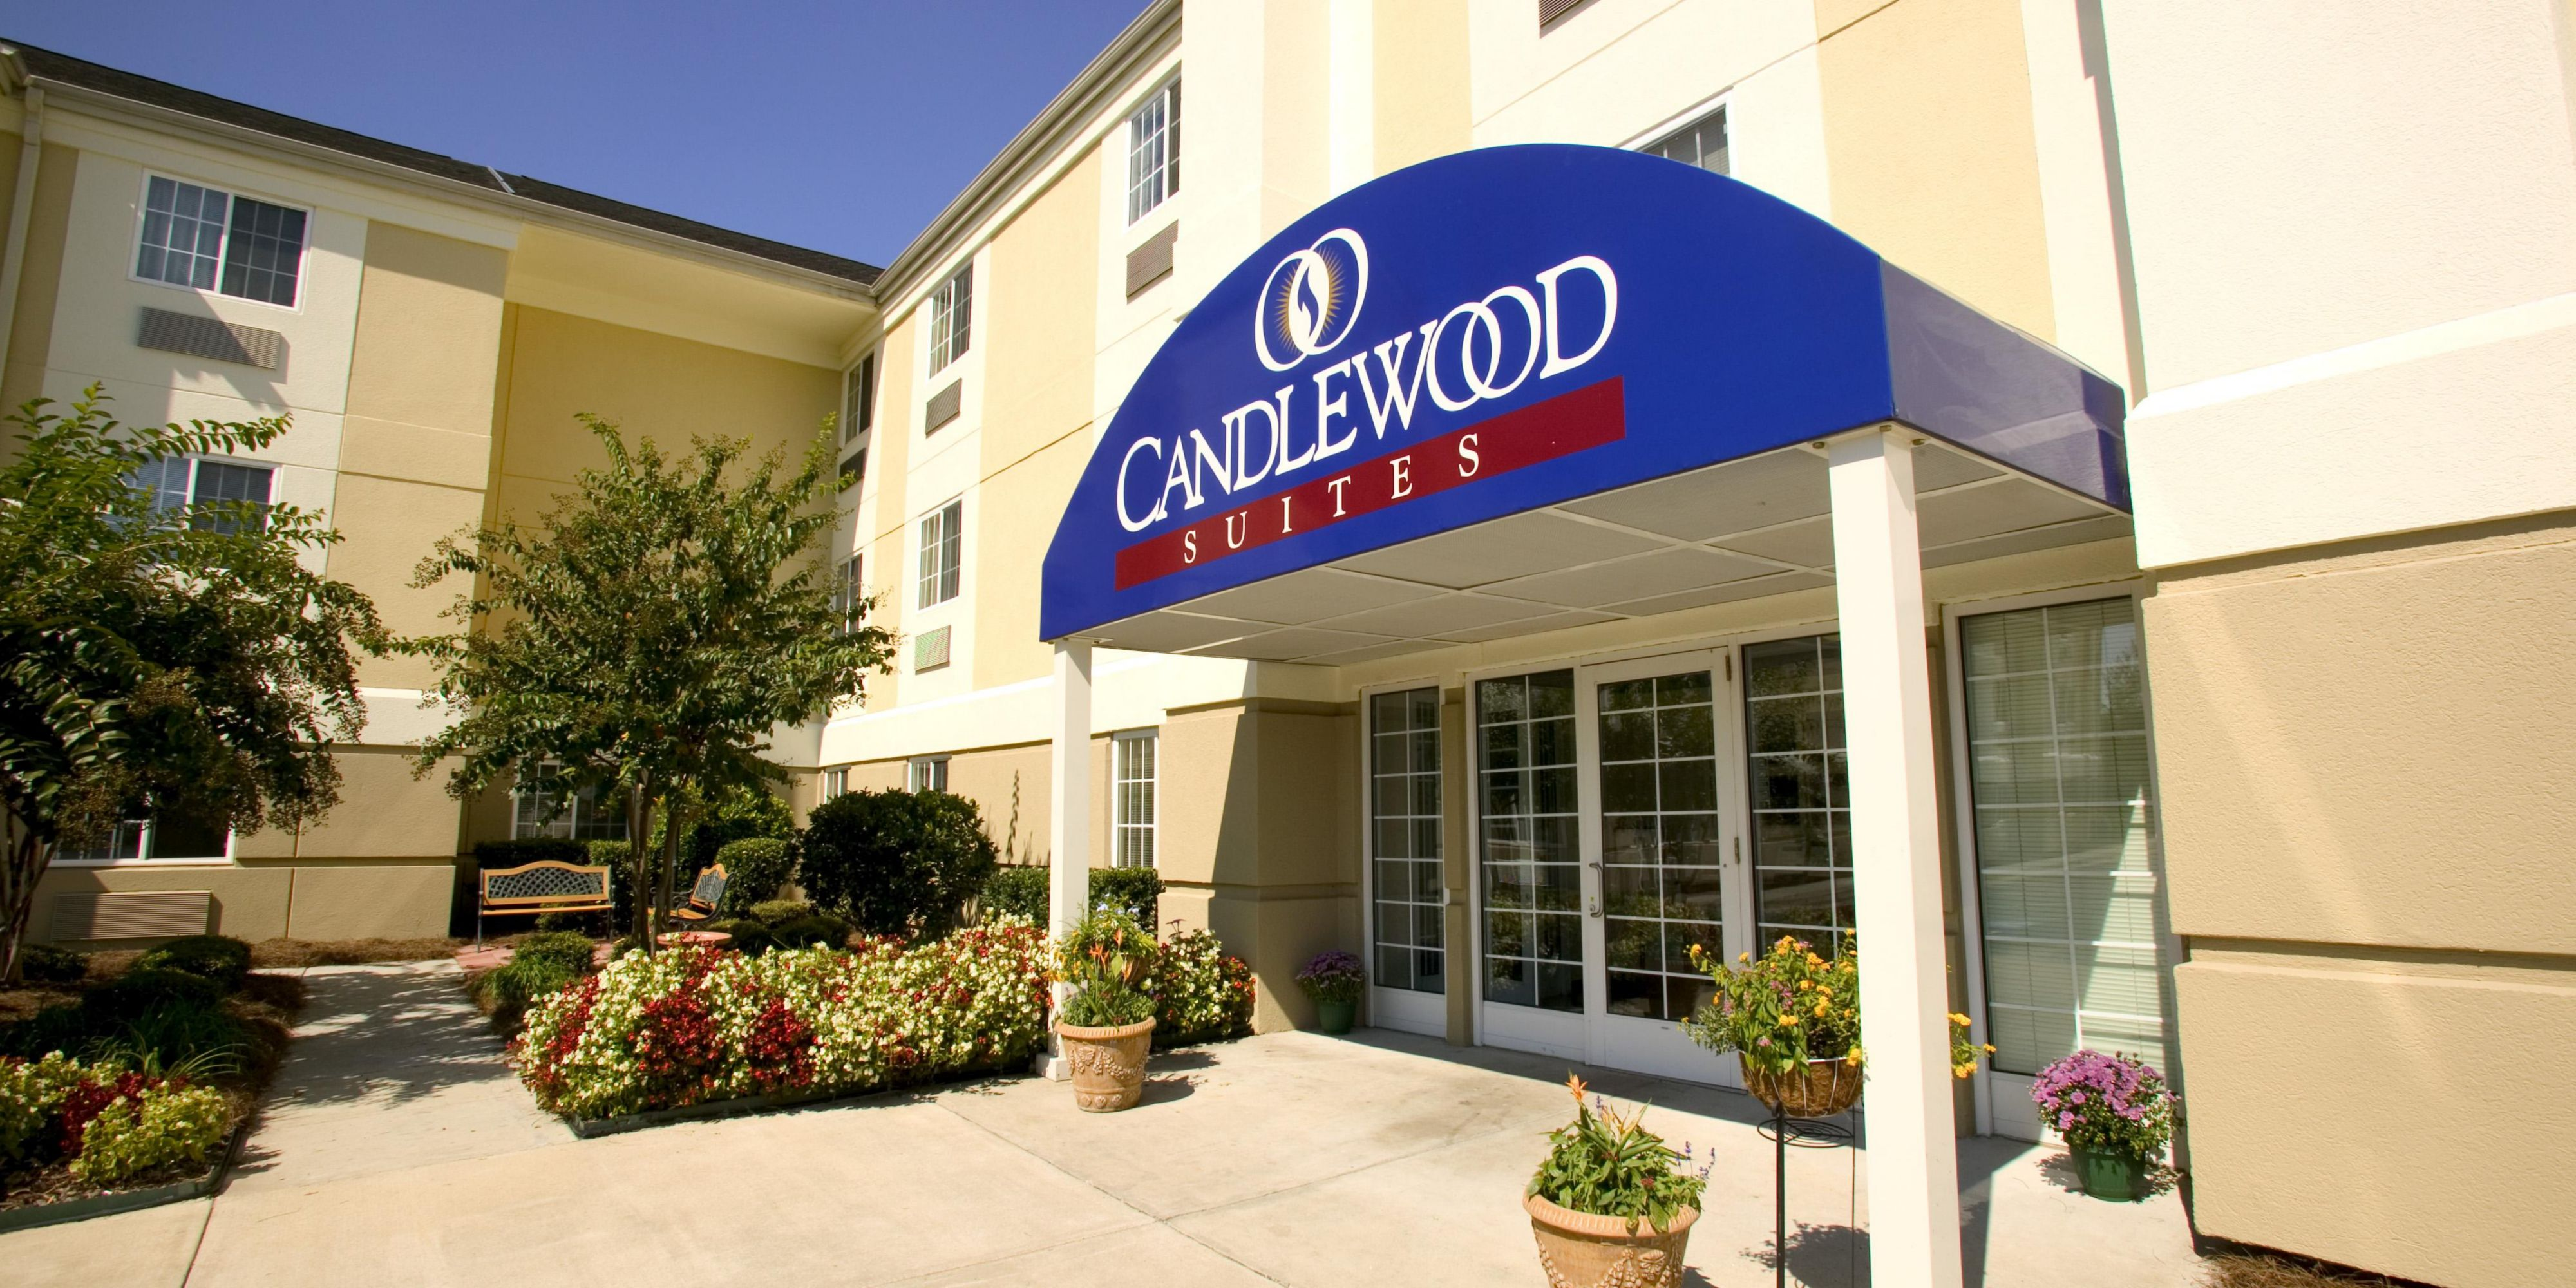 Welcome To Candlewood Suites!